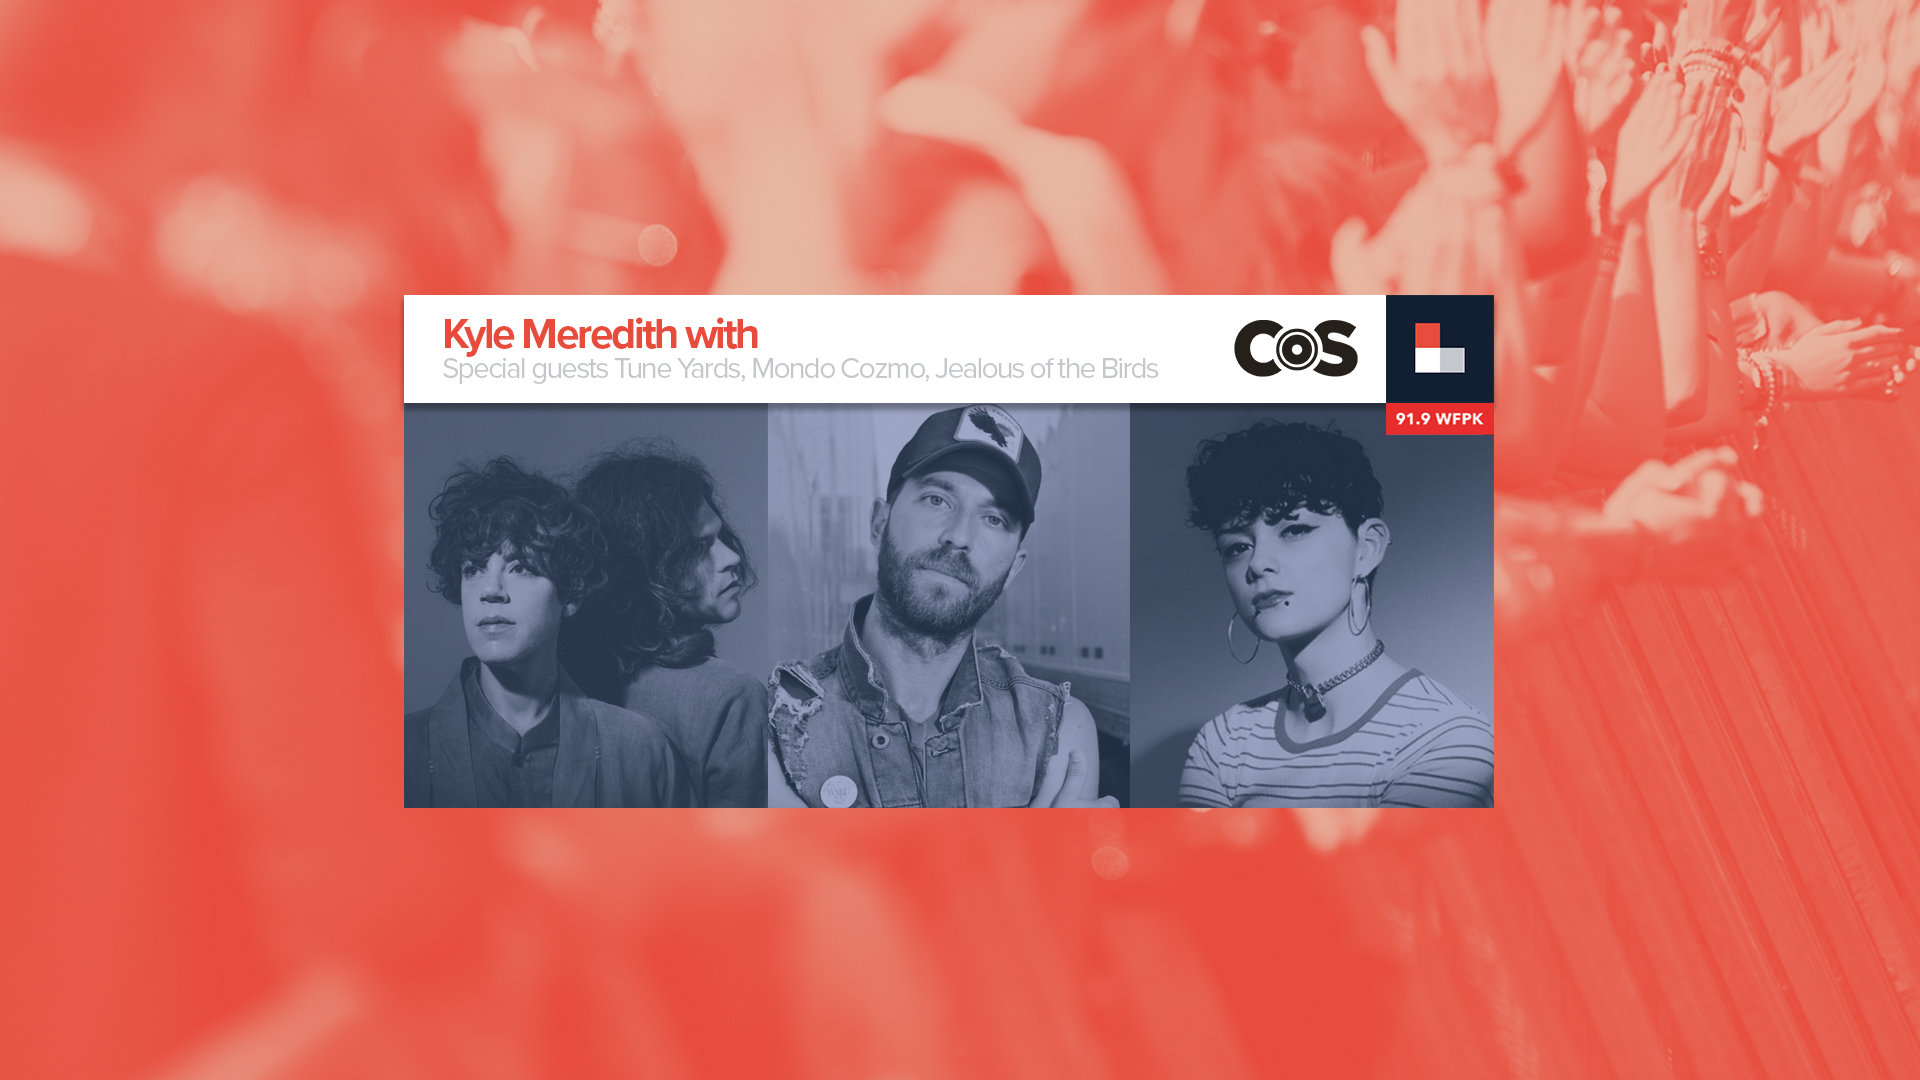 Kyle Meredith With... tUnE-yArDs, Mondo Cozmo, and Jealous of the Birds